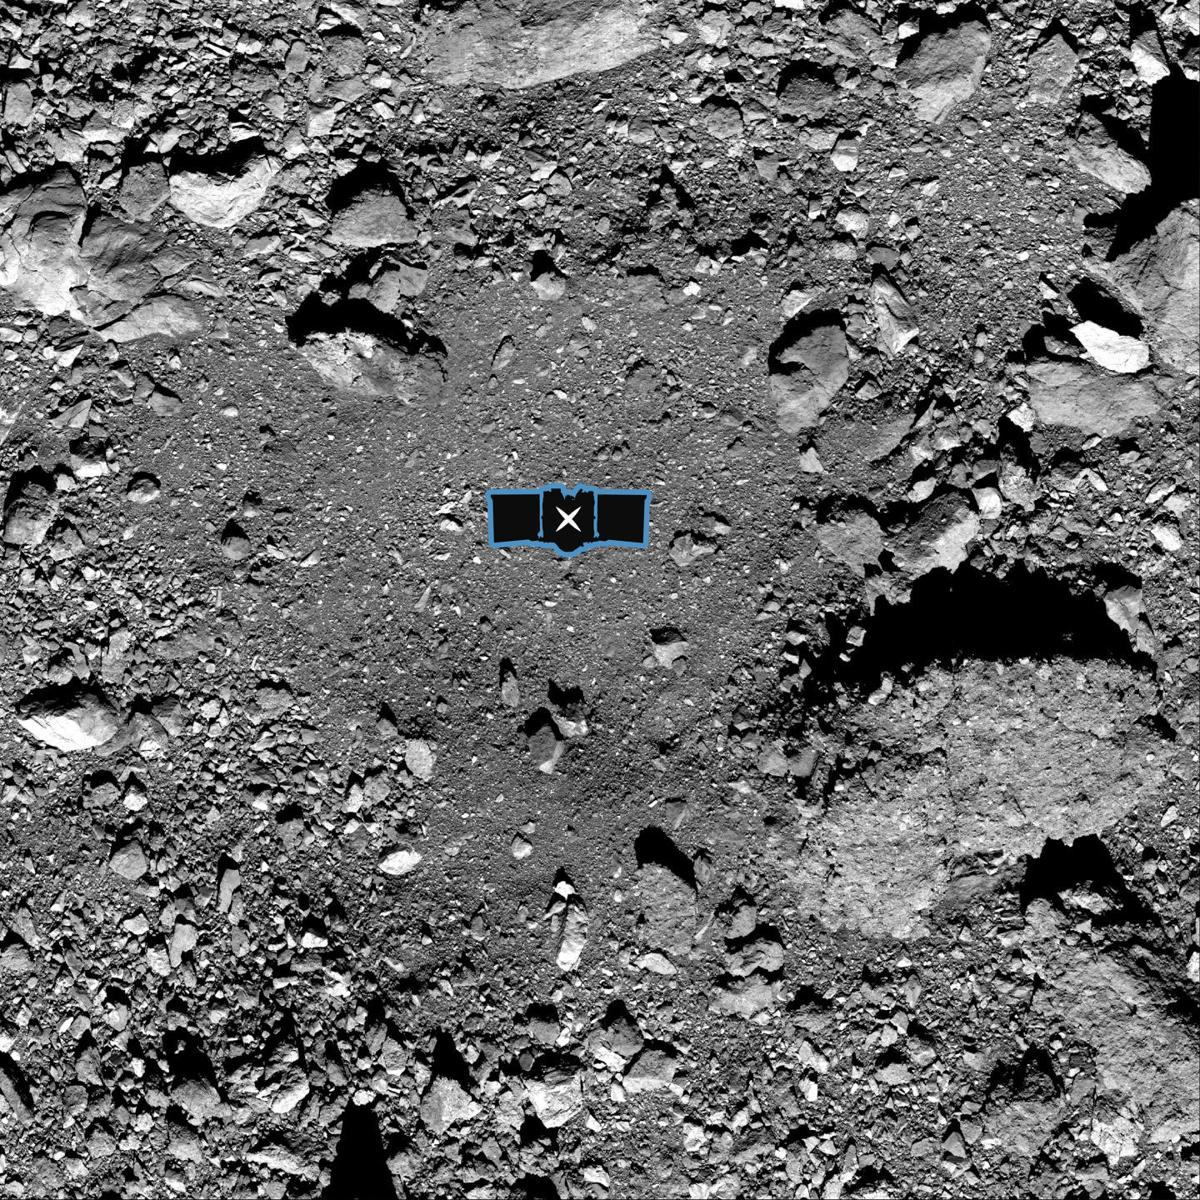 UA-led OSIRIS-REx mission selects collection site on asteroid Bennu